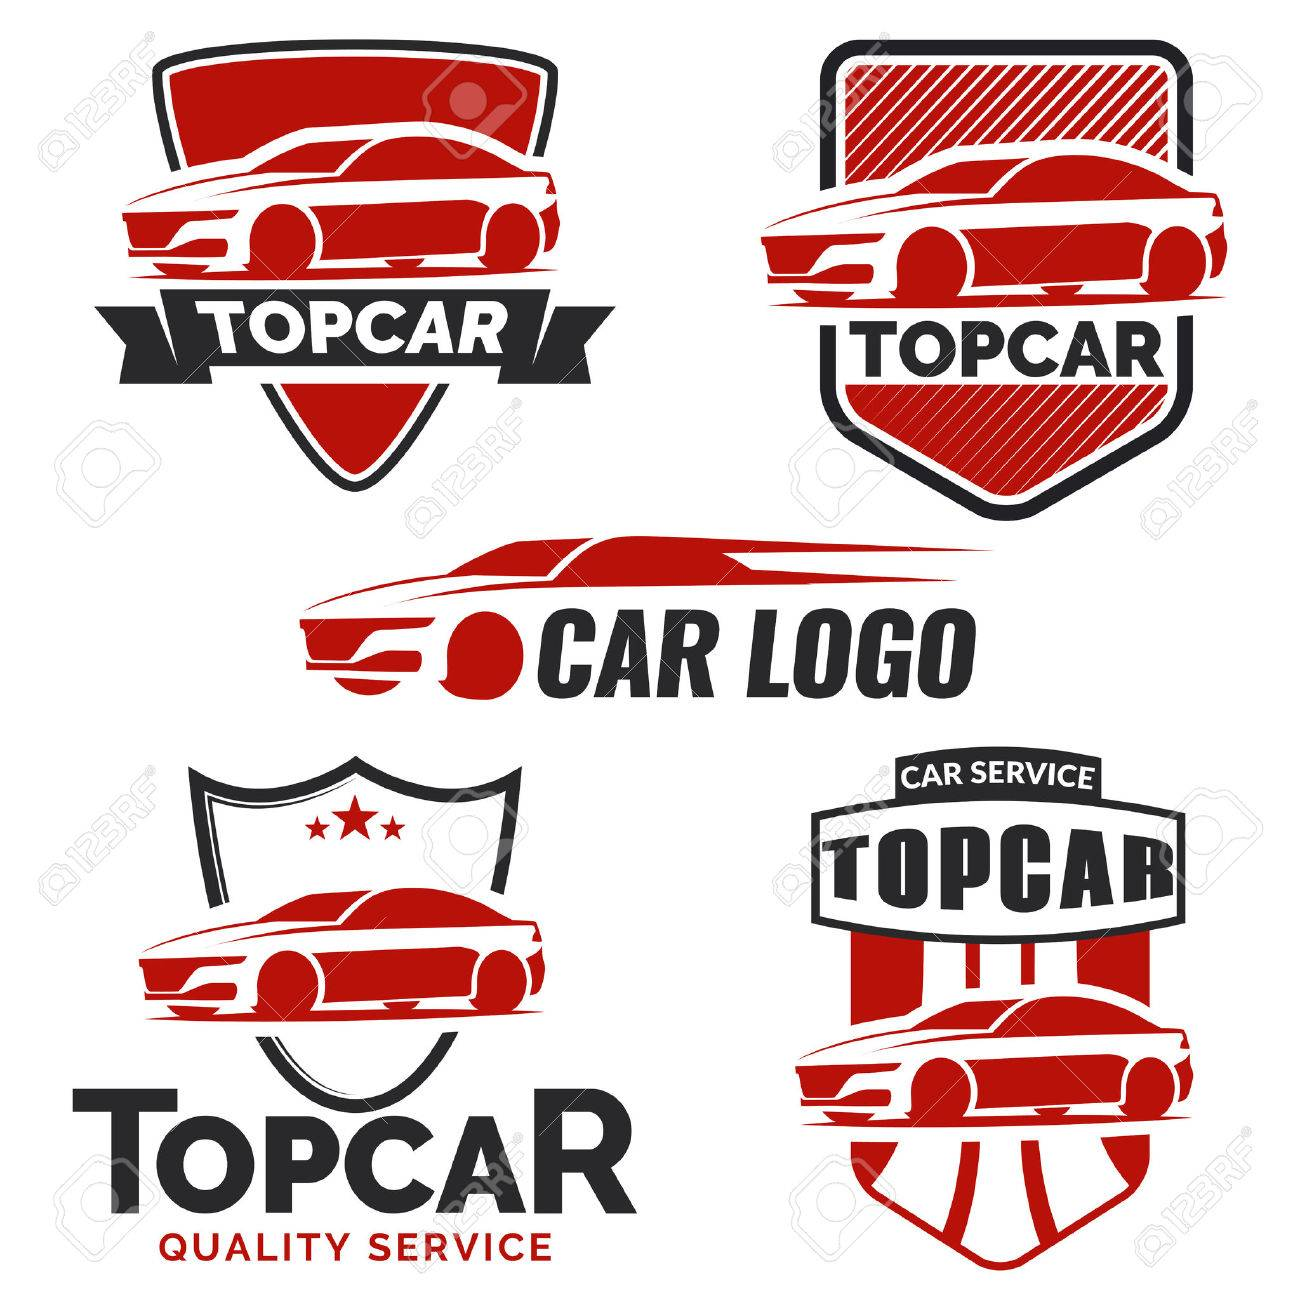 17973 car logo cliparts stock vector and royalty free car logo modern car logo on white background buycottarizona Images